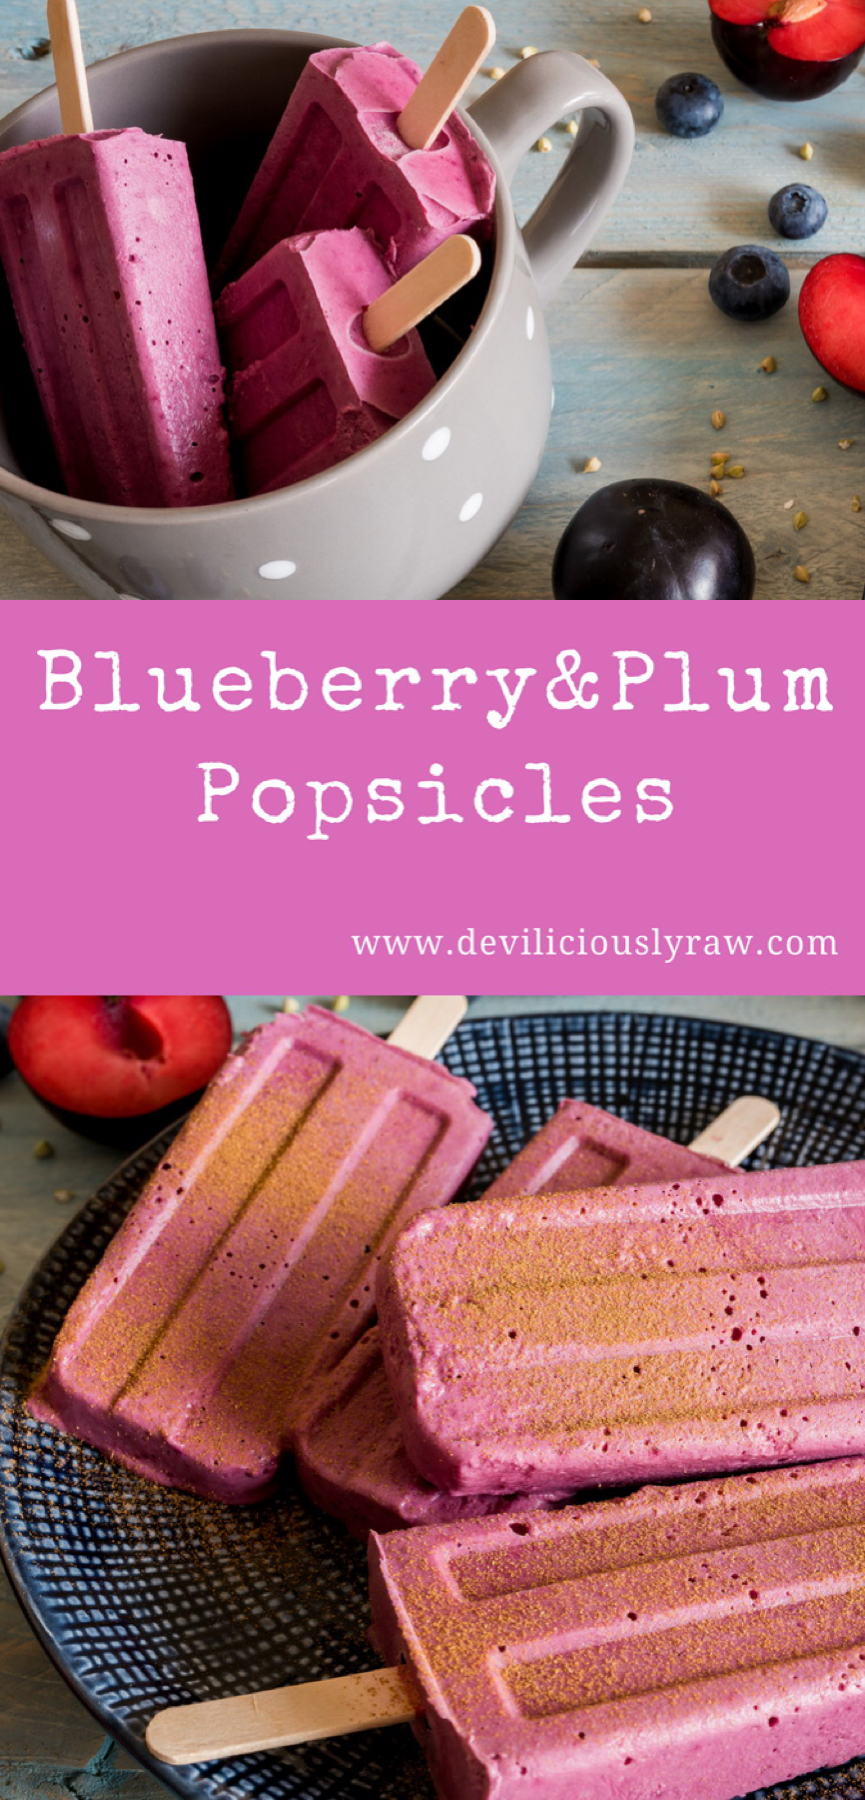 #raw #vegan Blueberry and Plum Popsicles from Deviliciously Raw